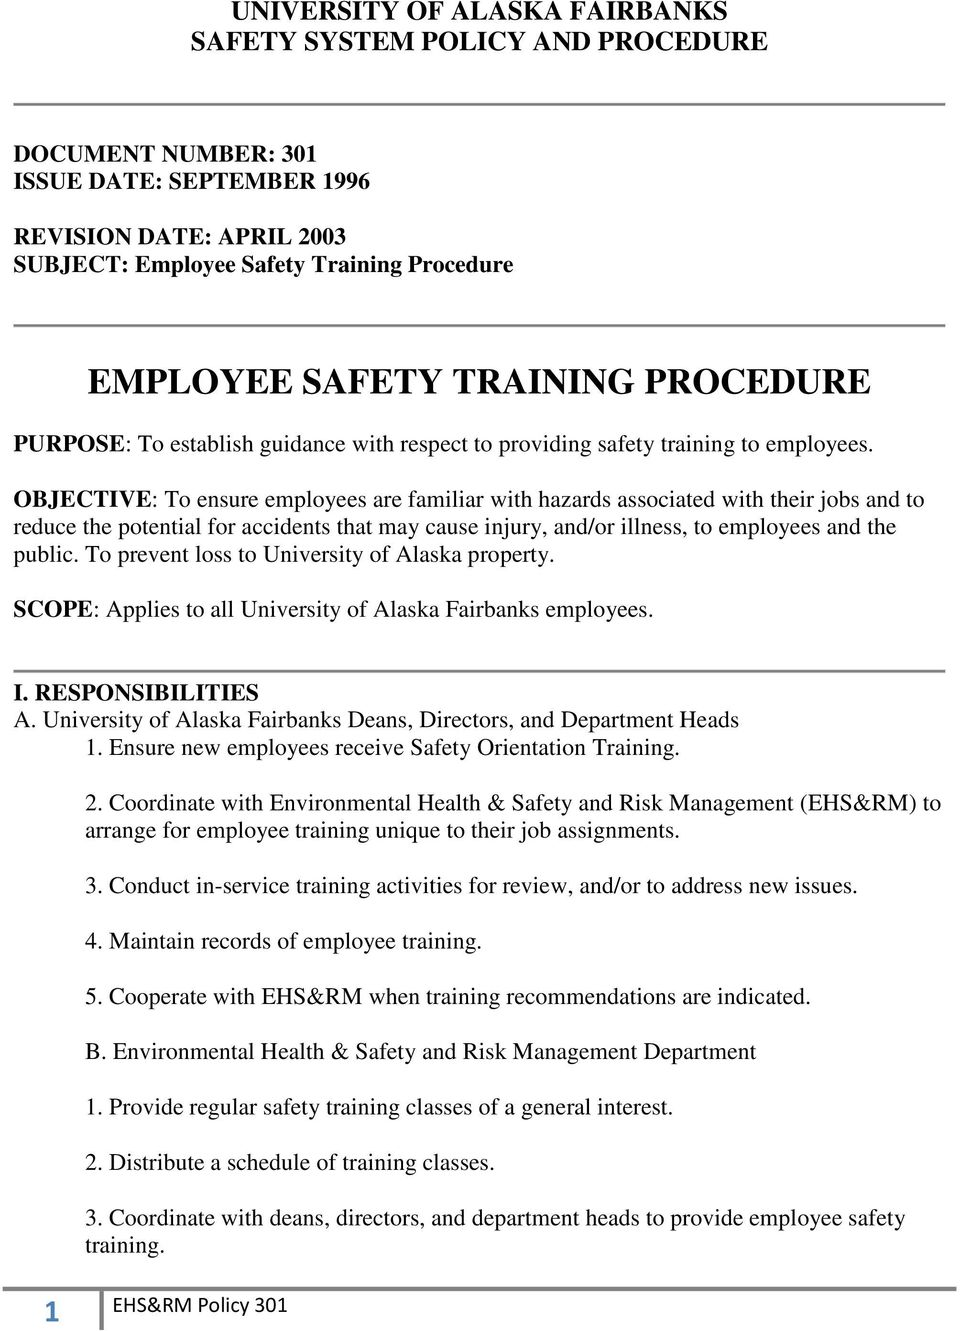 OBJECTIVE: To ensure employees are familiar with hazards associated with their jobs and to reduce the potential for accidents that may cause injury, and/or illness, to employees and the public.